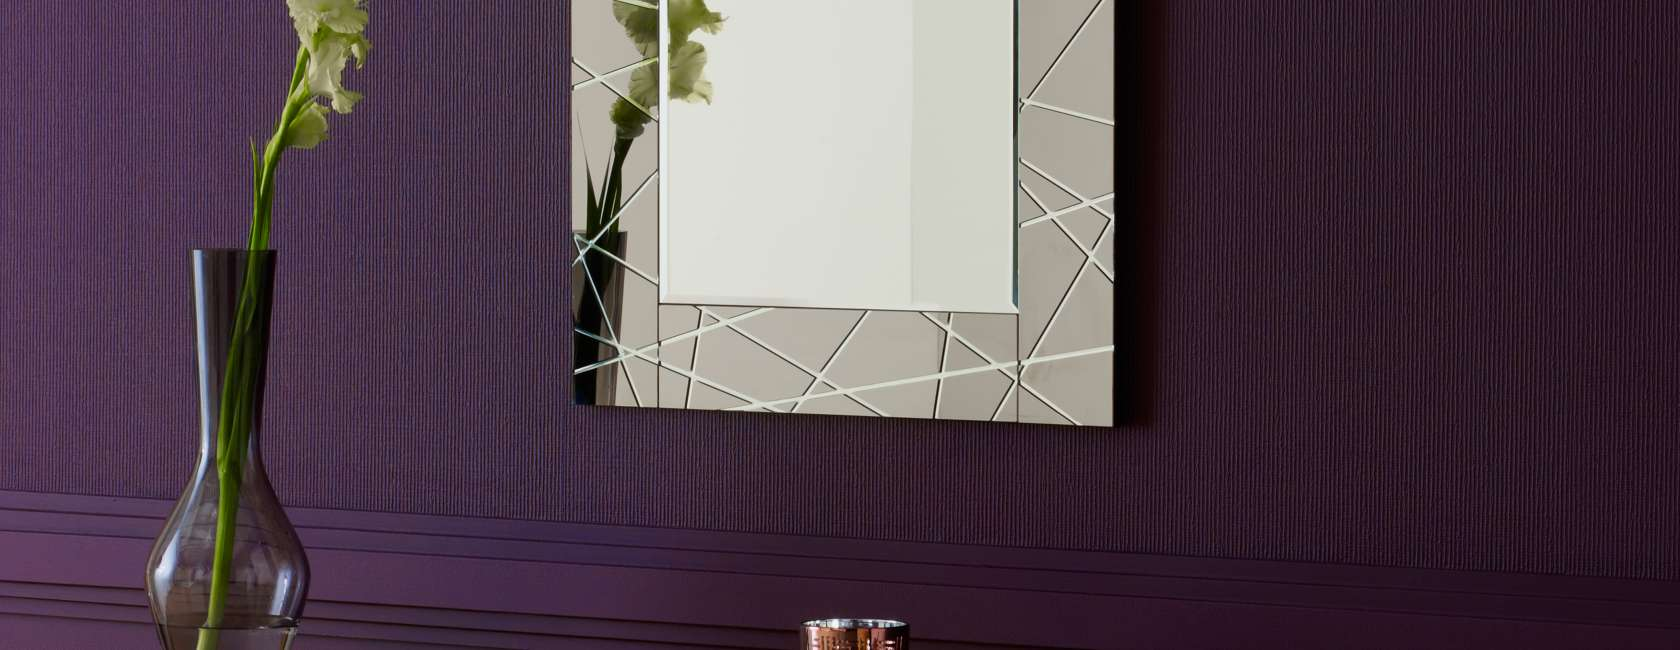 Wedding Gifts John Lewis: John Lewis & Partners Smoke Engraved Mirror Range At John